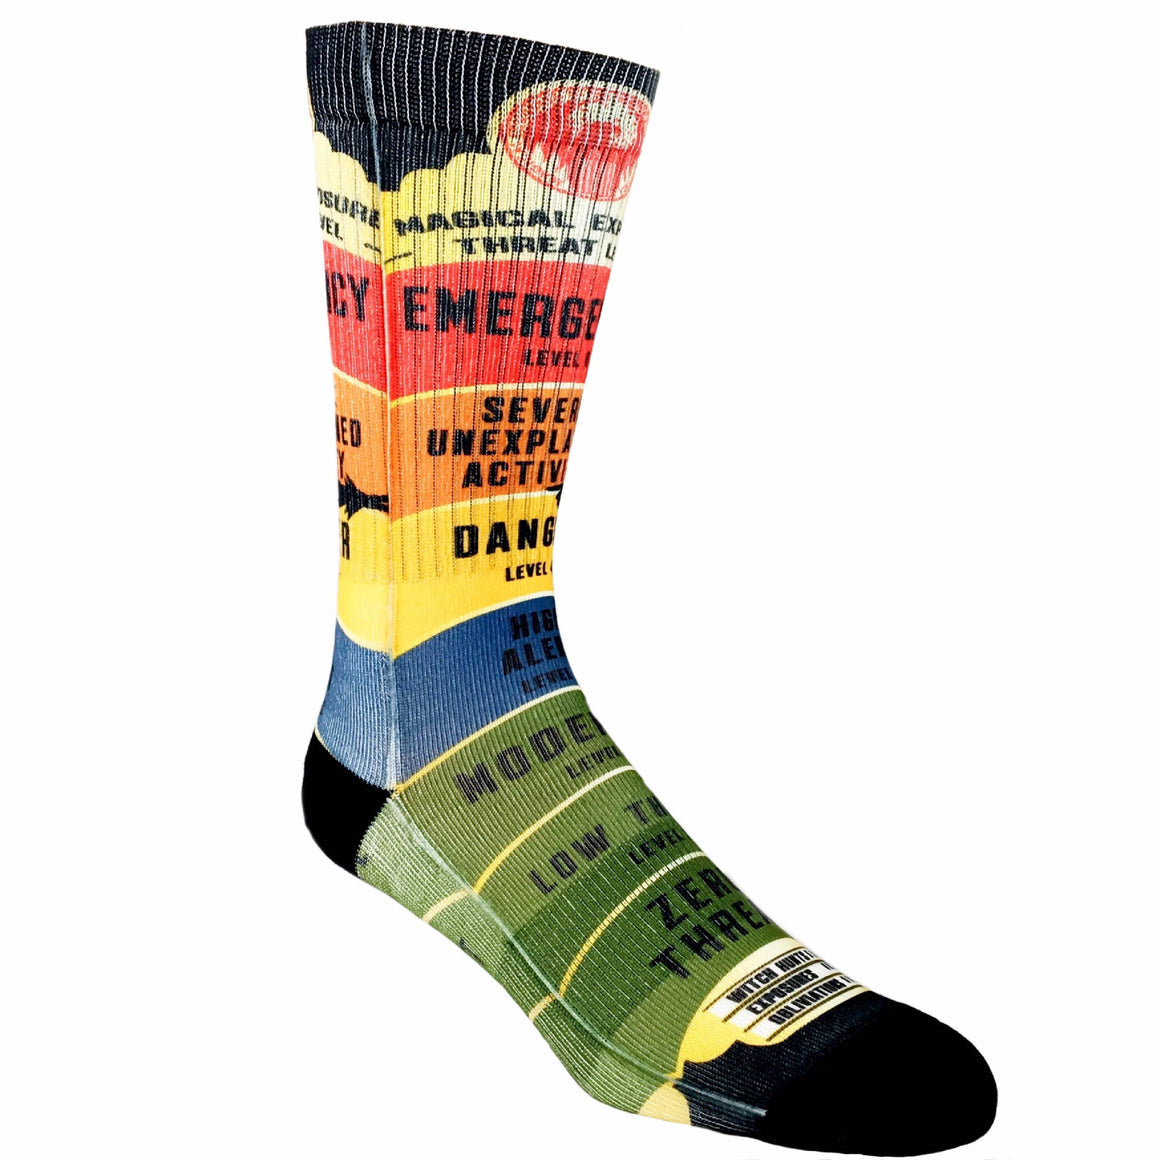 Fantastic Beasts Printed Harry Potter Socks - The Sock Spot